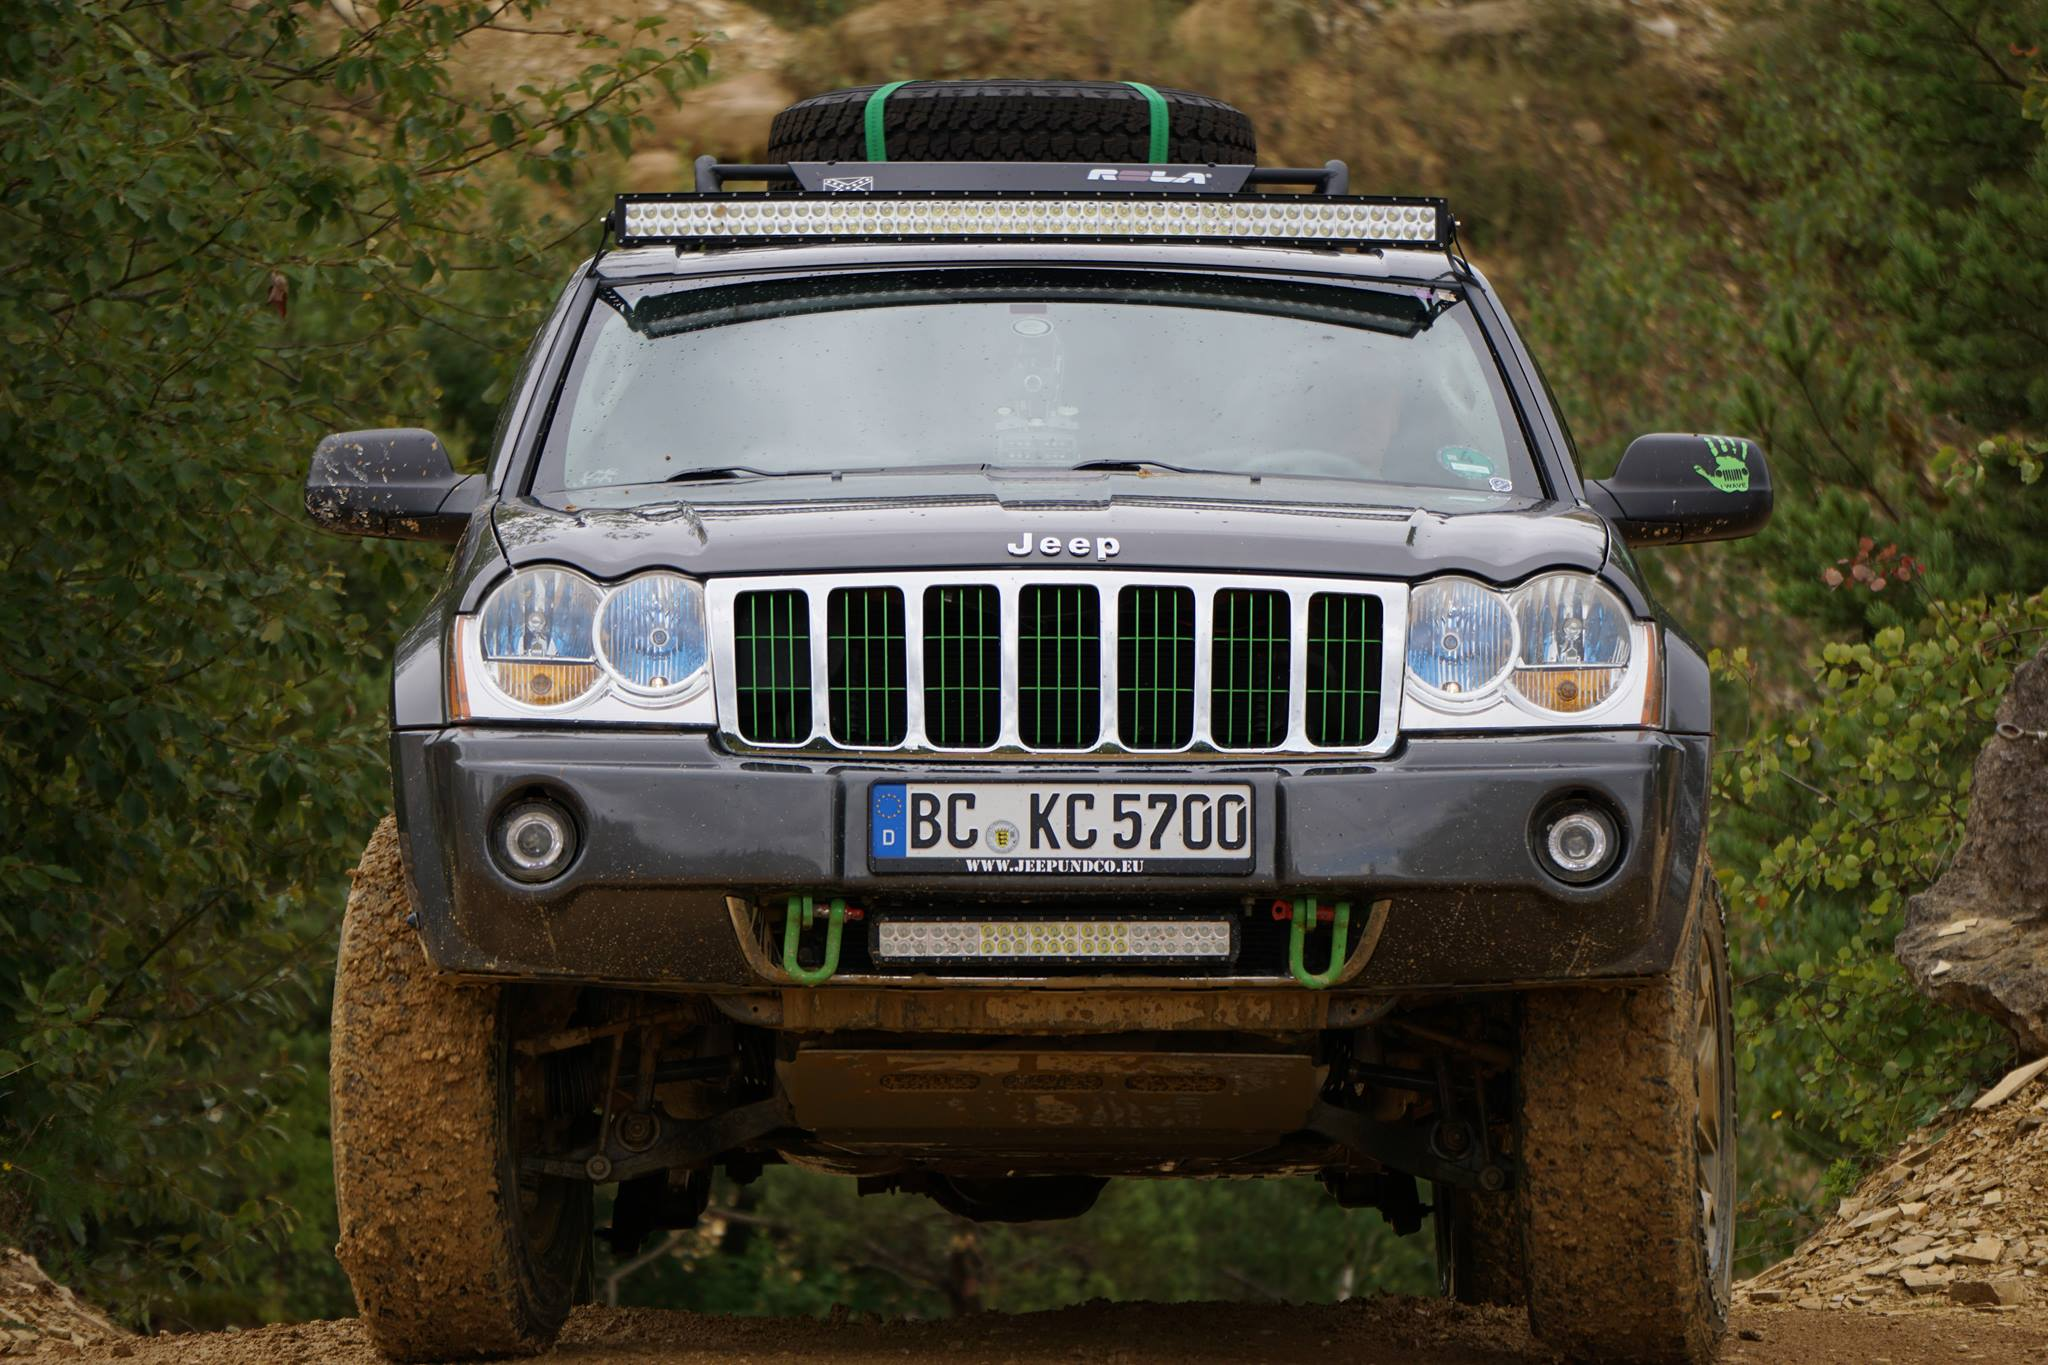 Enjoy better visibility late at night with a great light bar for Jeep Grand Cherokee.